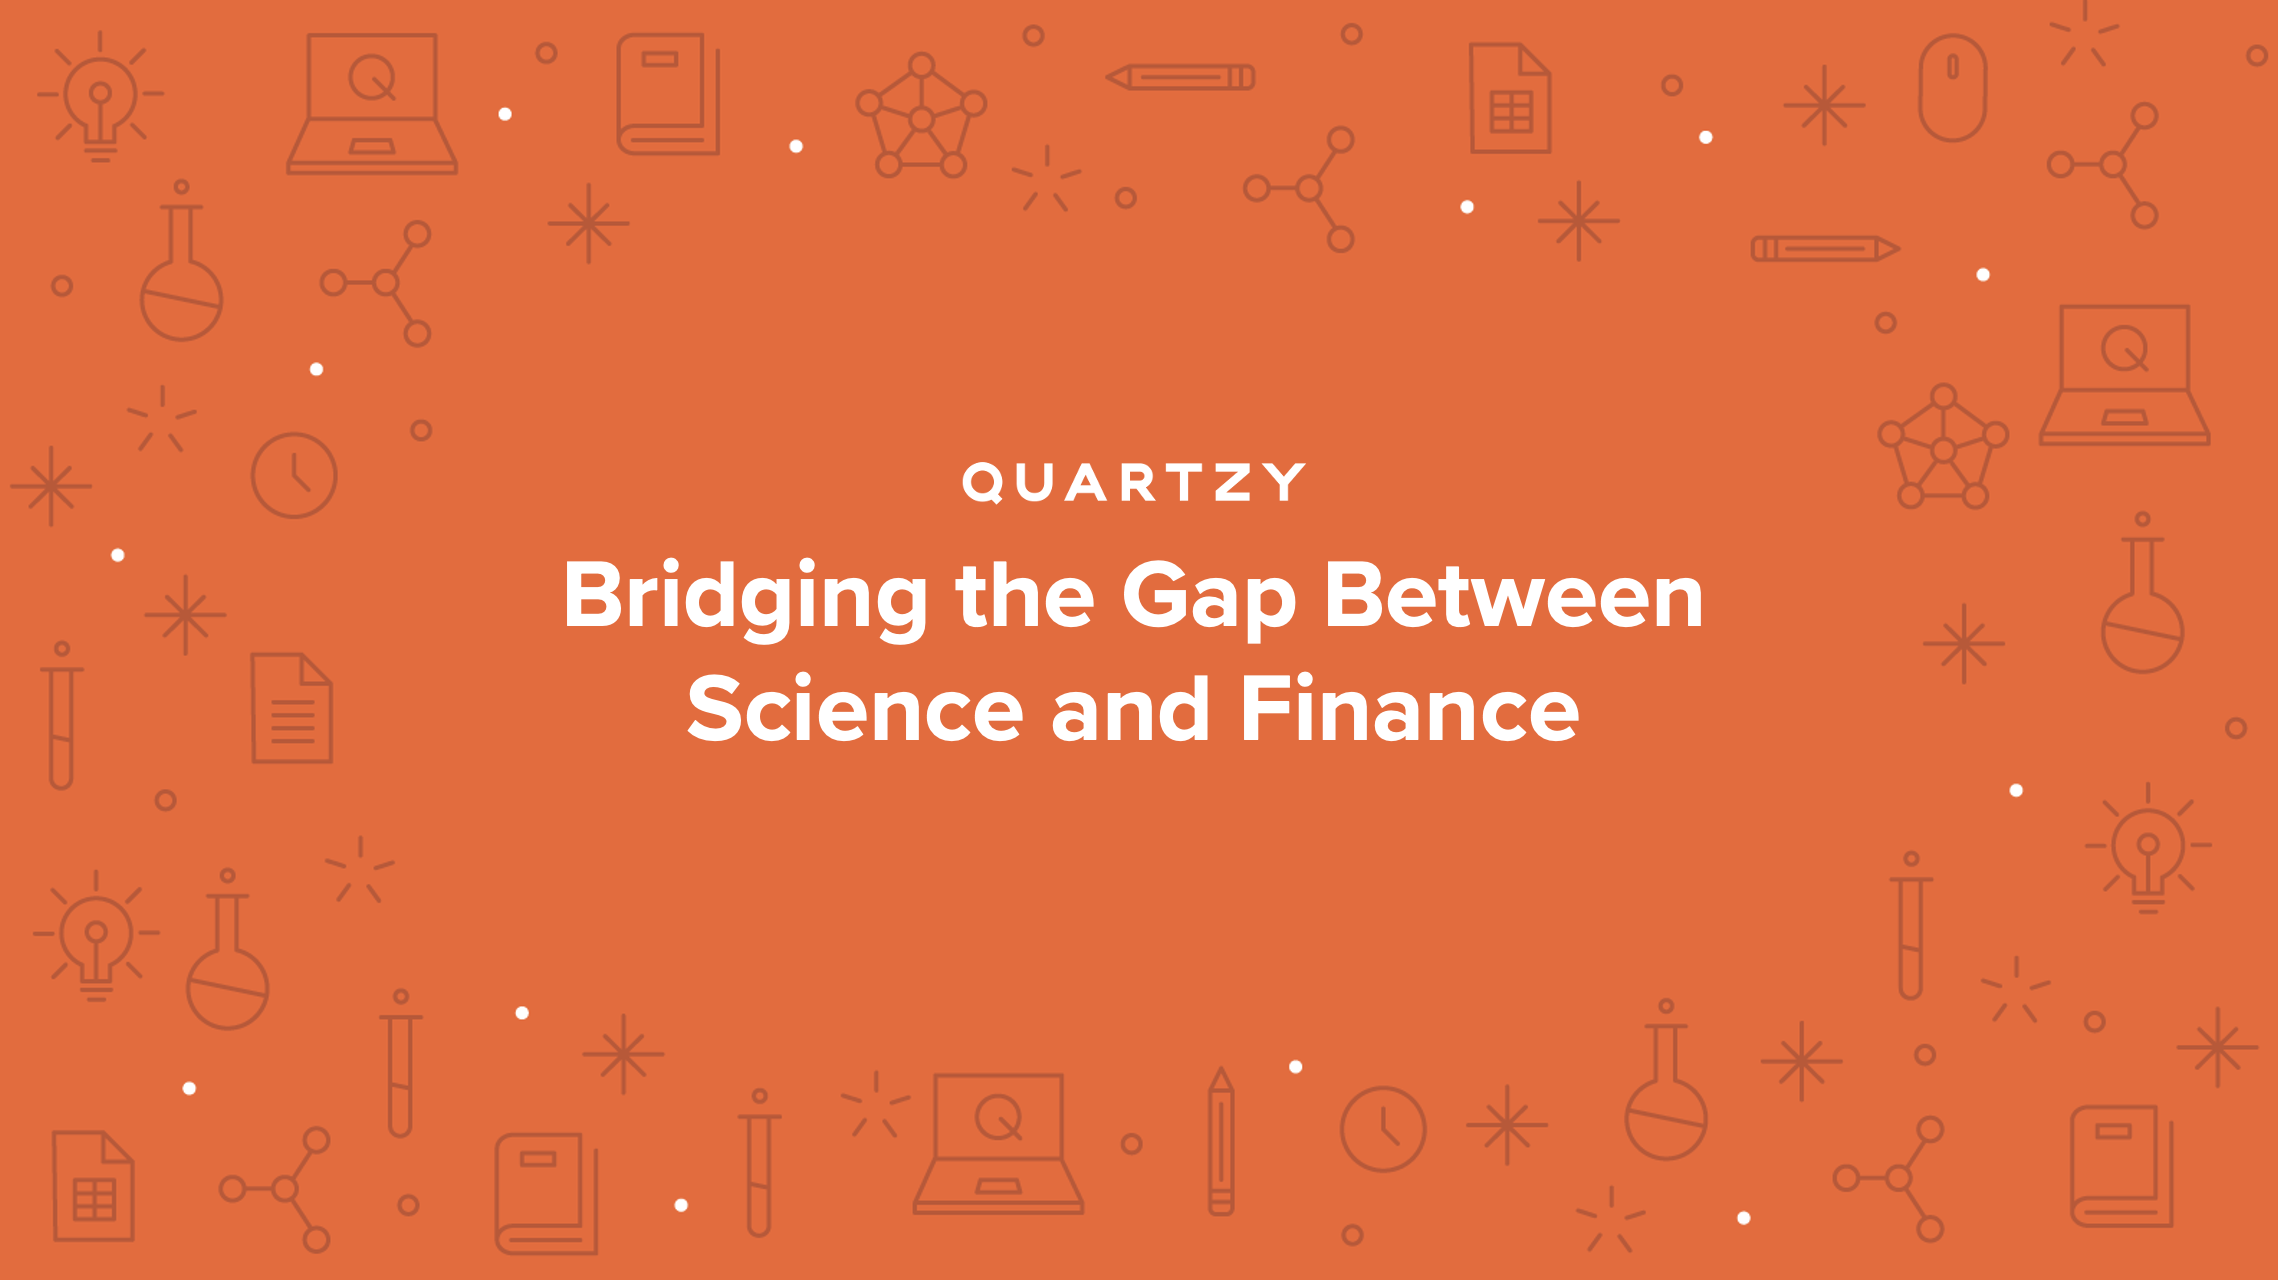 Bridging the Gap Between Science and Finance